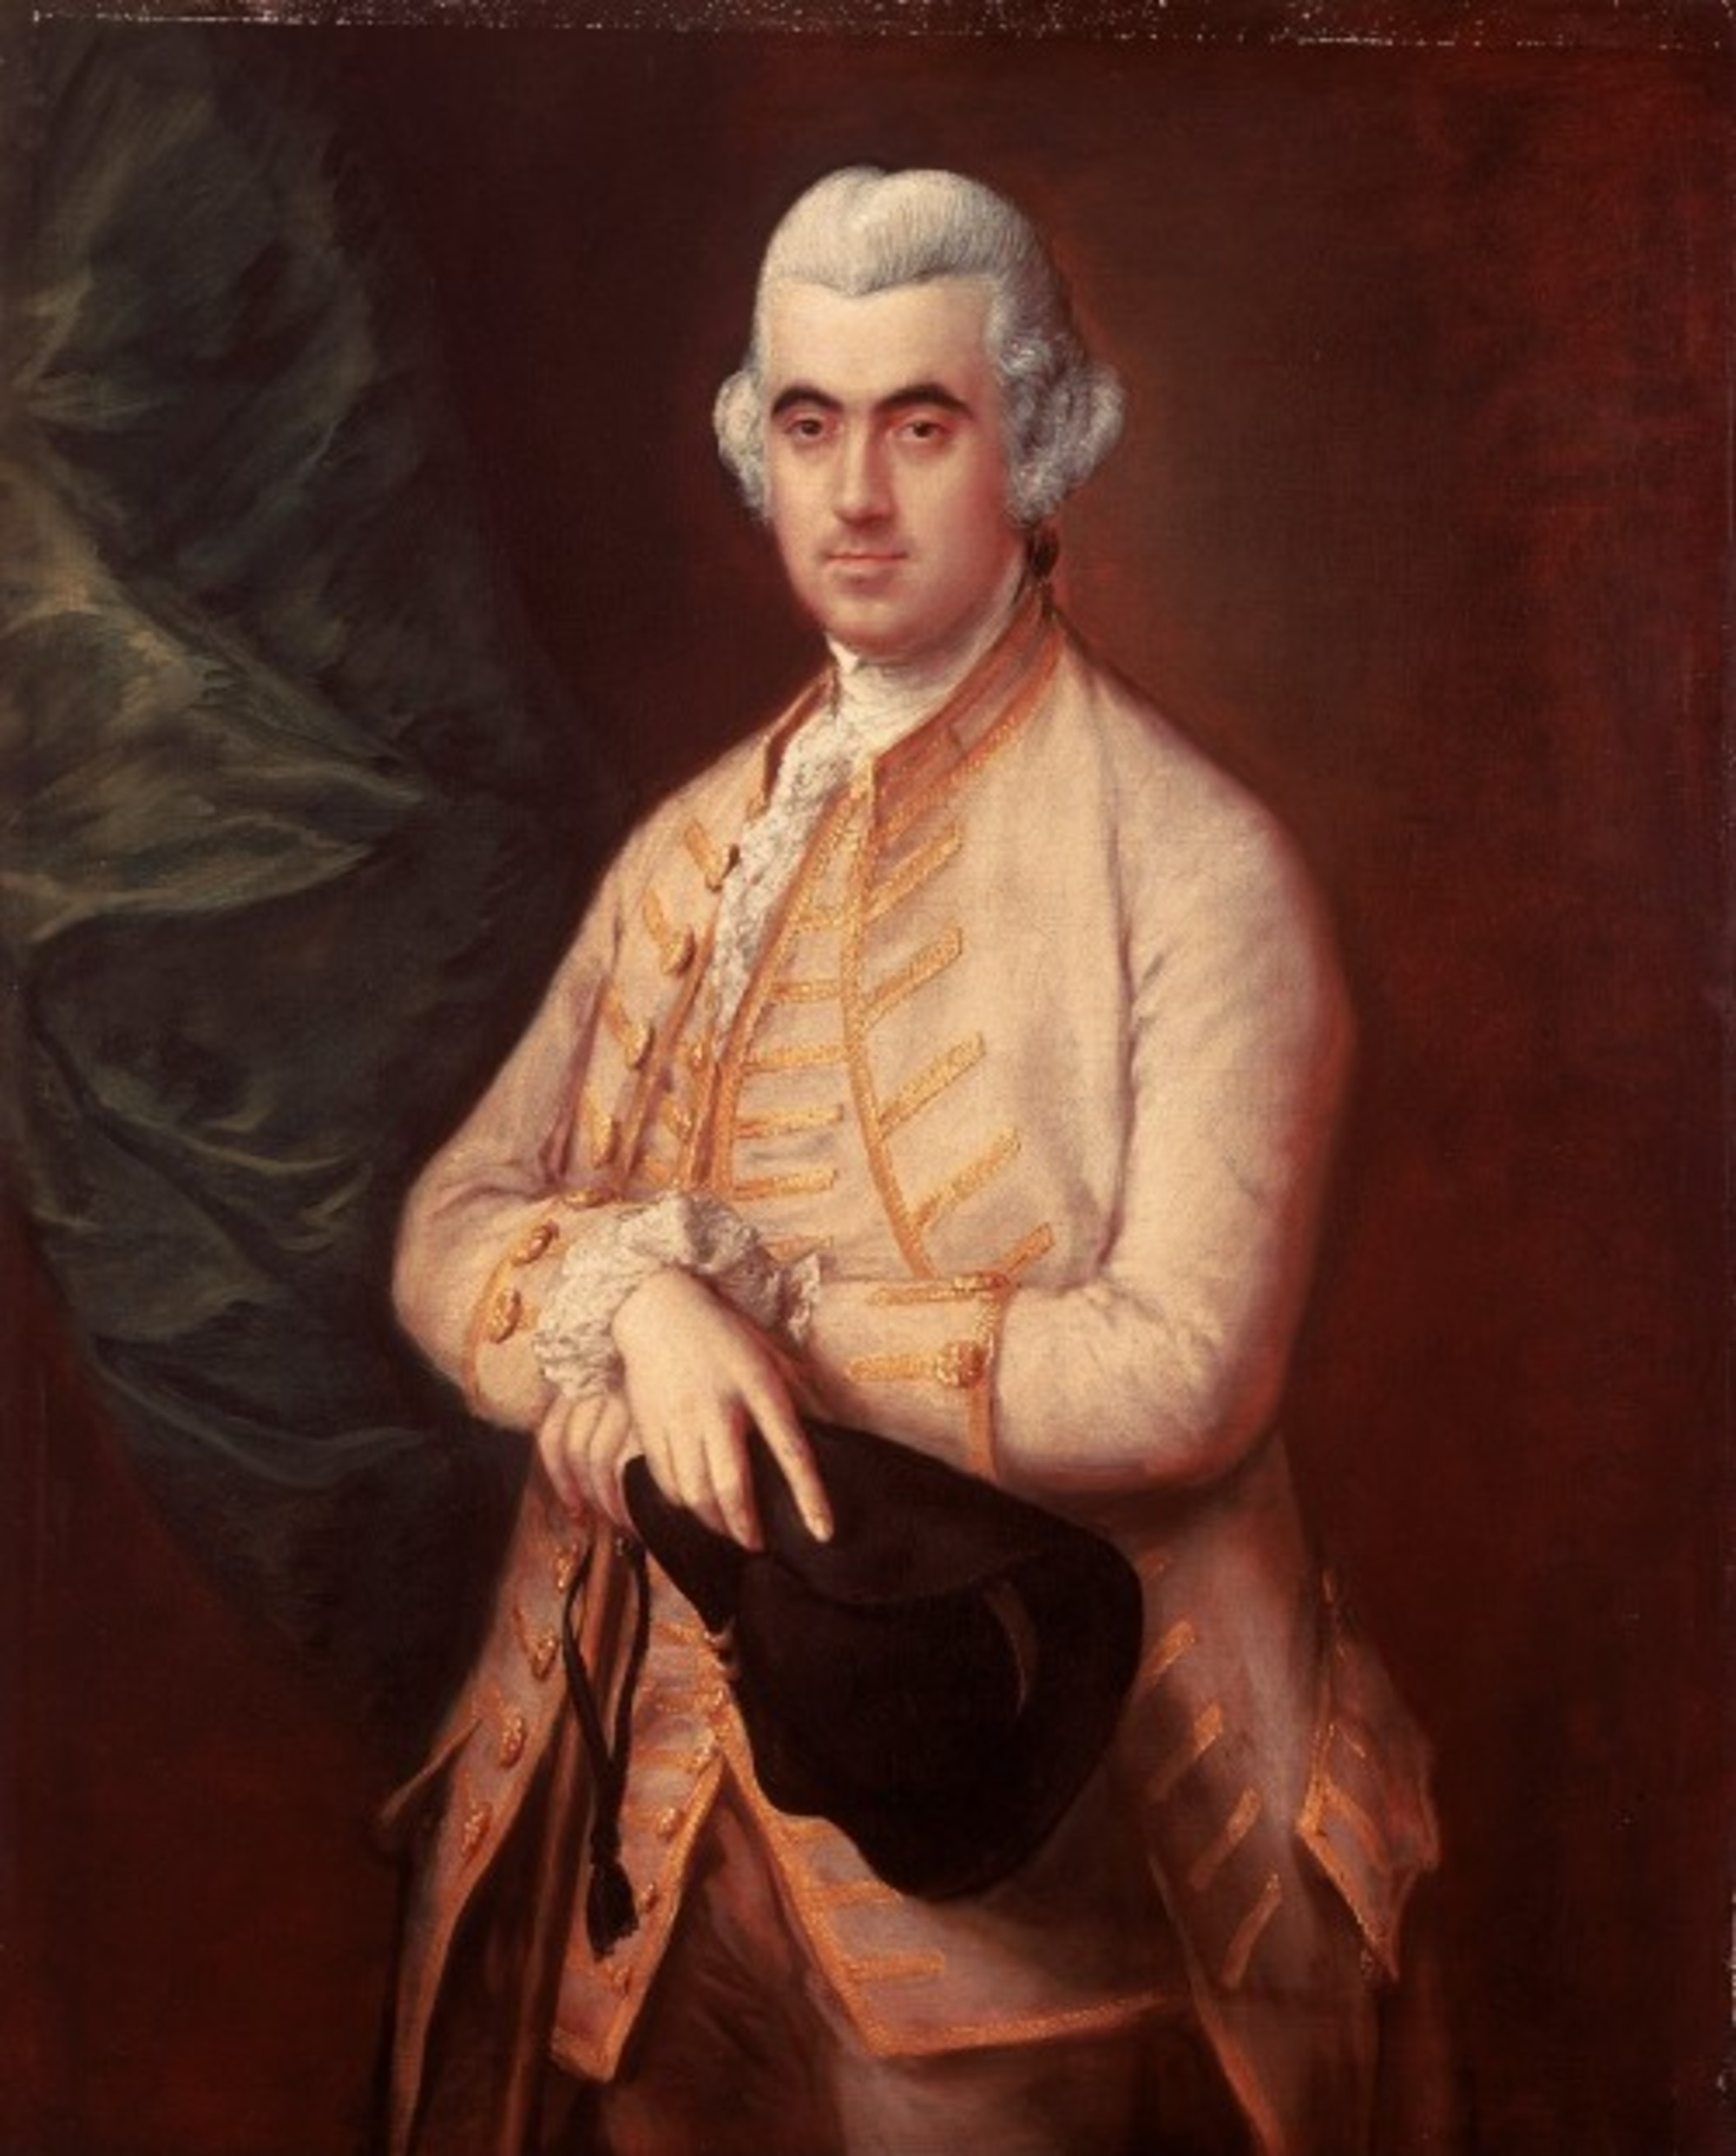 Thomas_Gainsborough_-_Sir_Robert_Clayton_-_Google_Art_Project.jpg